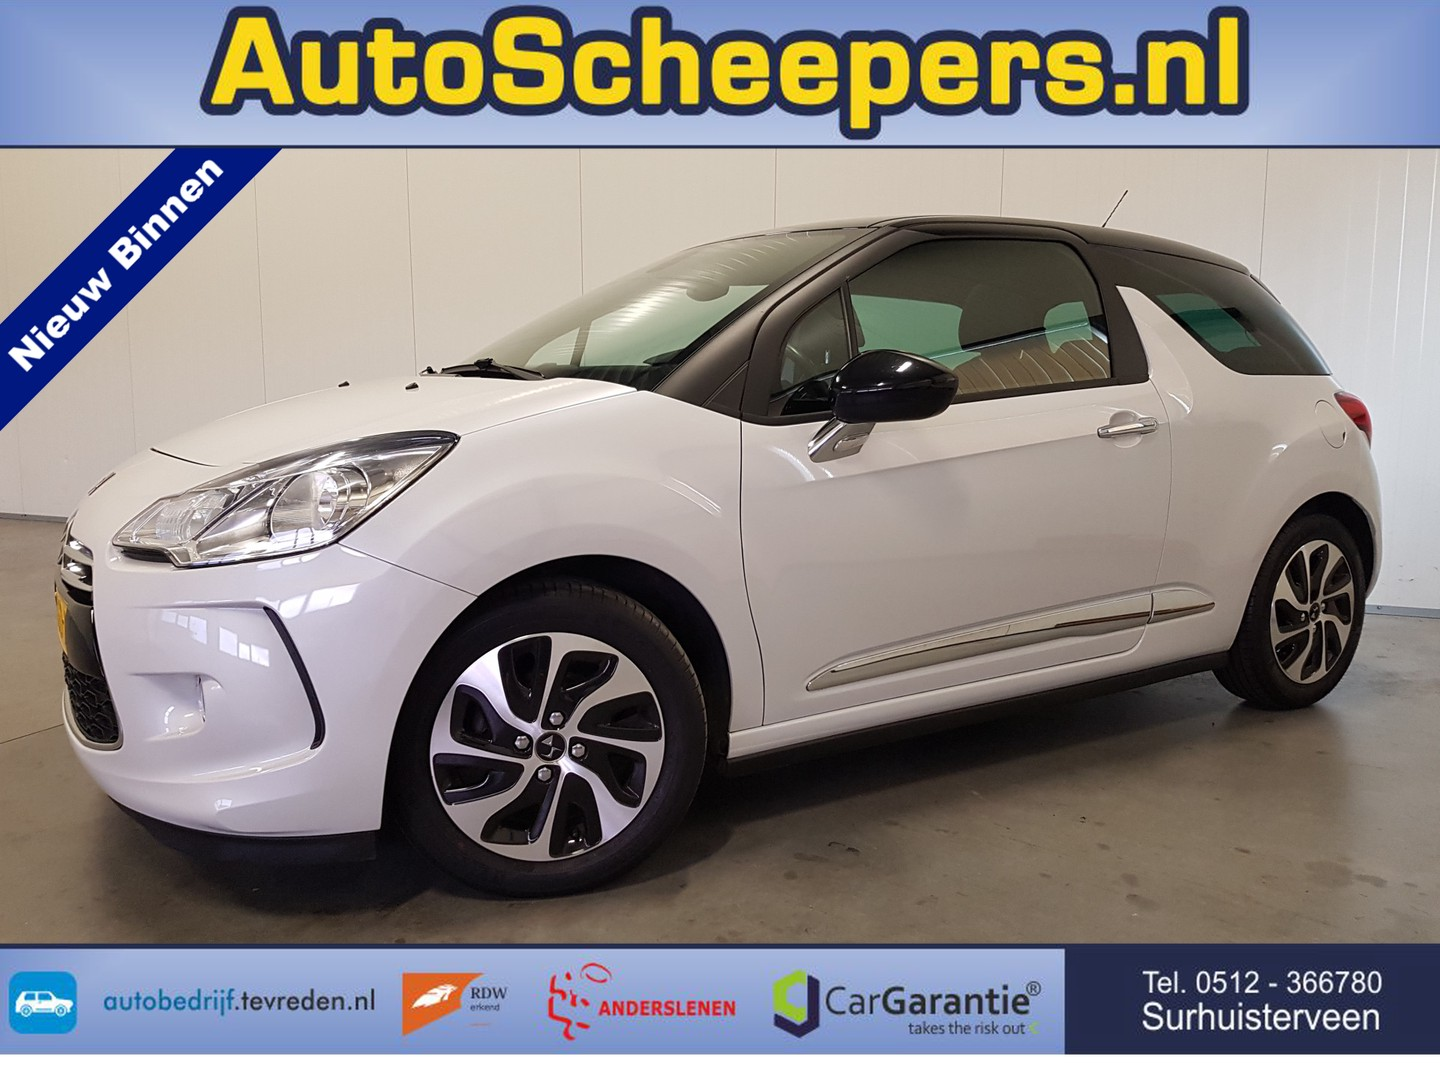 Ds Ds 3 1.6 bluehdi business navi/cruise/pdc/clima/lmv